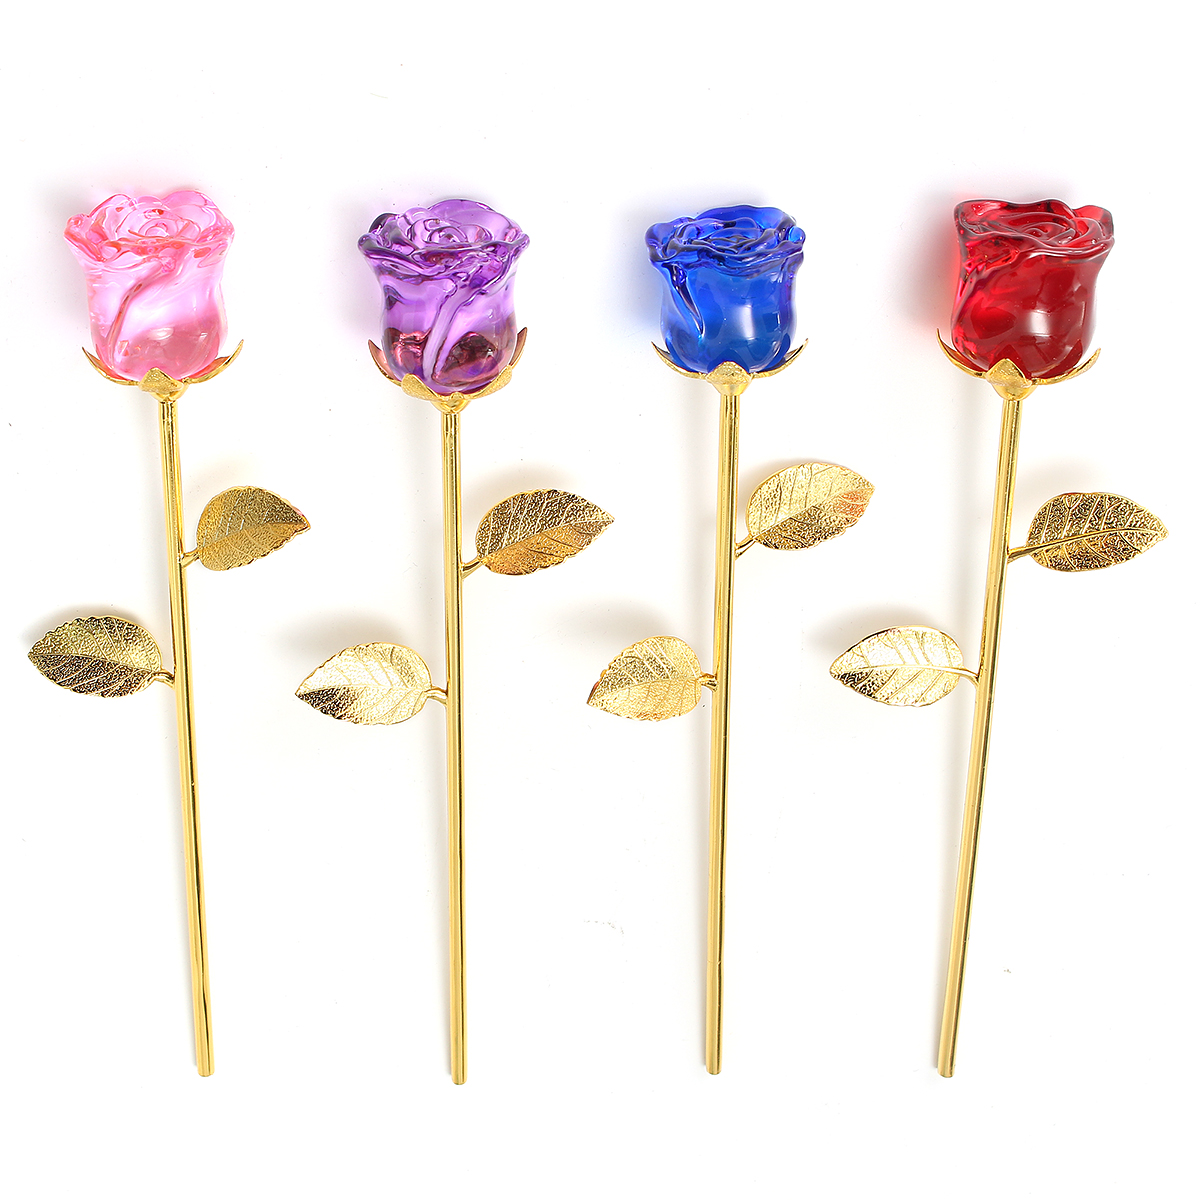 24K Gold Crystal Rose Dipped Flower Real Long Stem Valentine's Day Love Gift